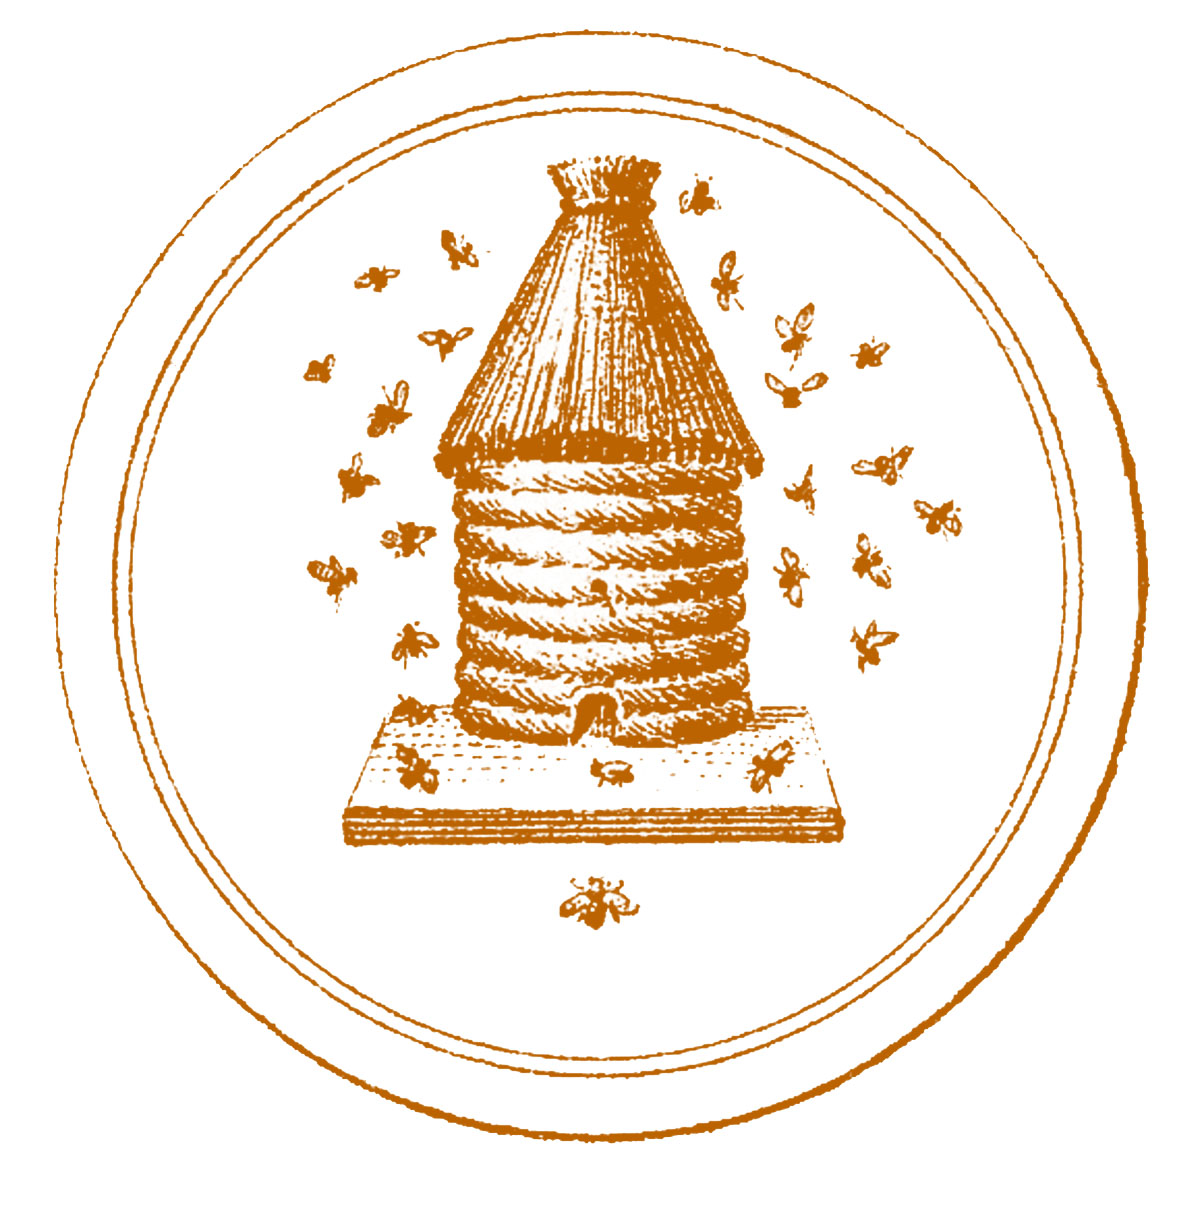 Vintage Graphic - French Beehive - The Graphics Fairy